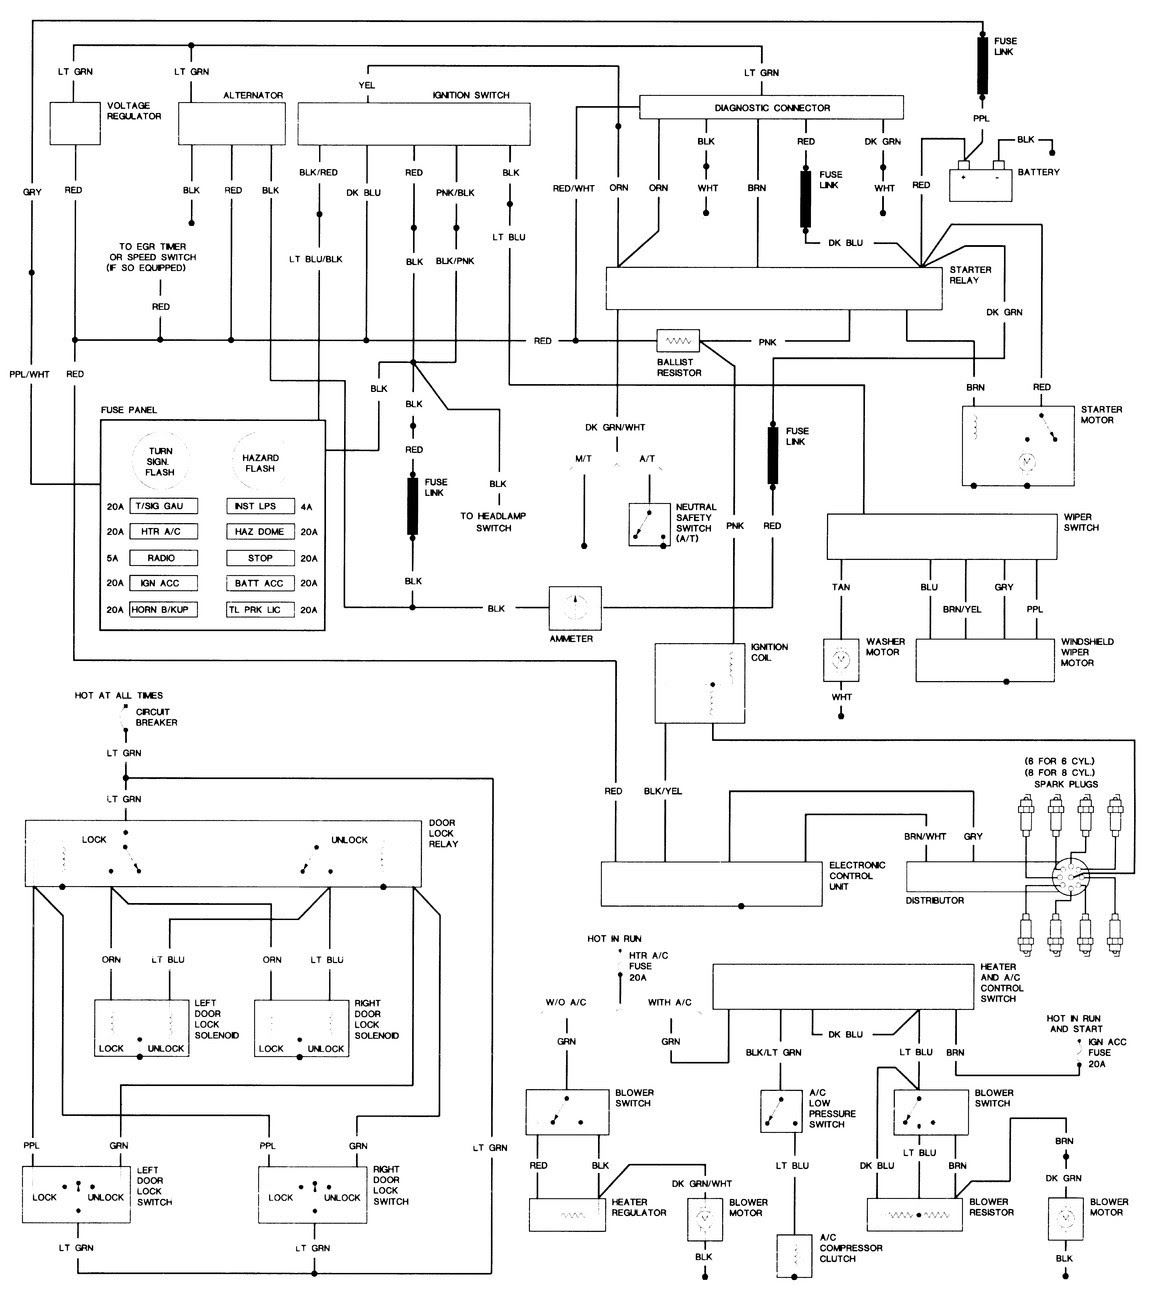 1985 Dodge Wiring Diagram Overhead Crane Electrical Wiring Diagram For Wiring Diagram Schematics